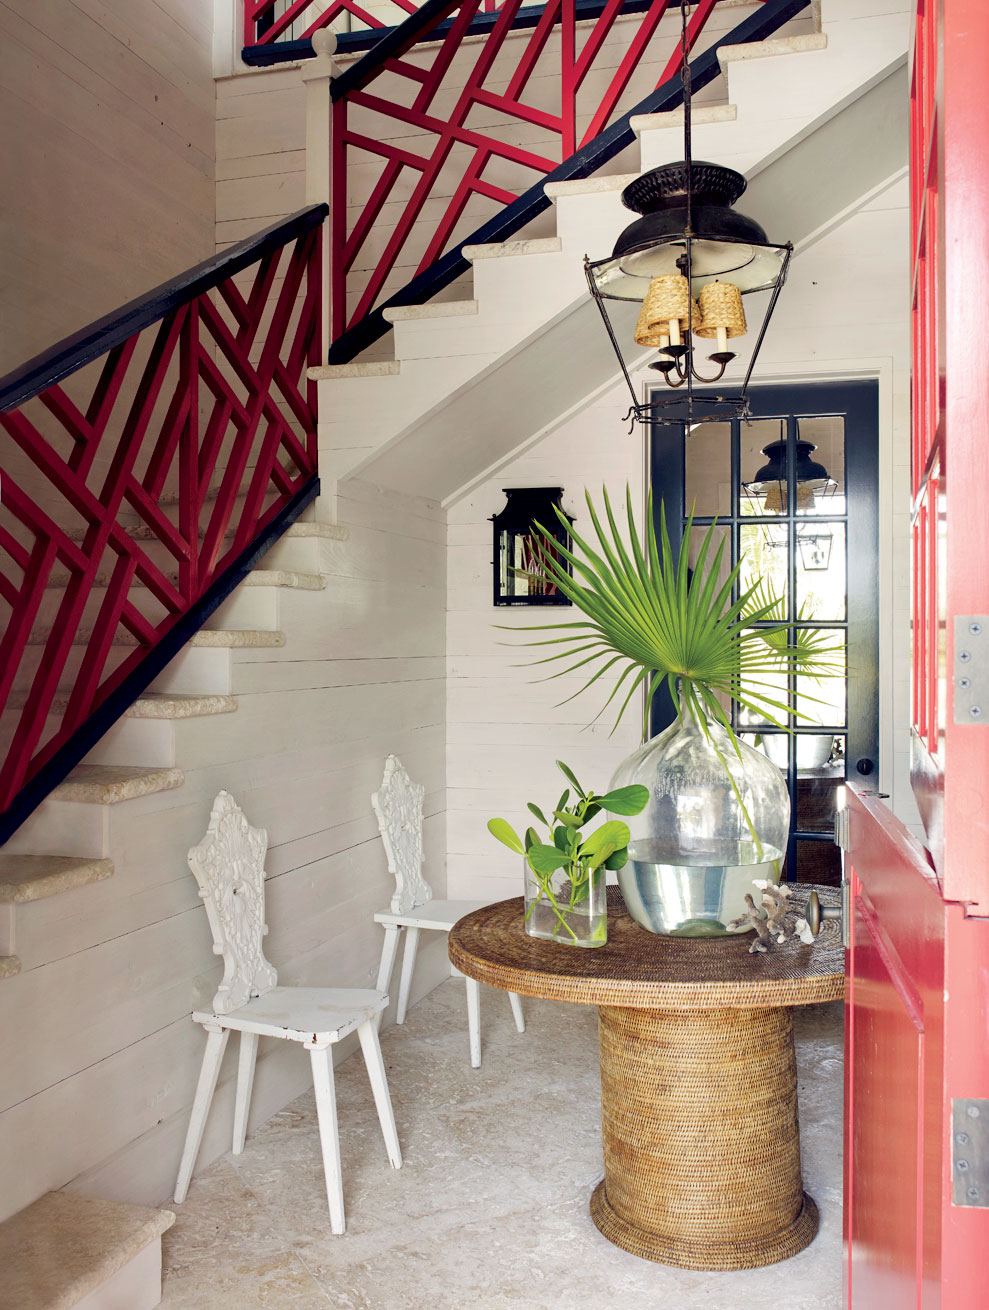 entrance beach house chinese asian inspired stairs railing better decorating bible blog interior decor palm leaf in vase